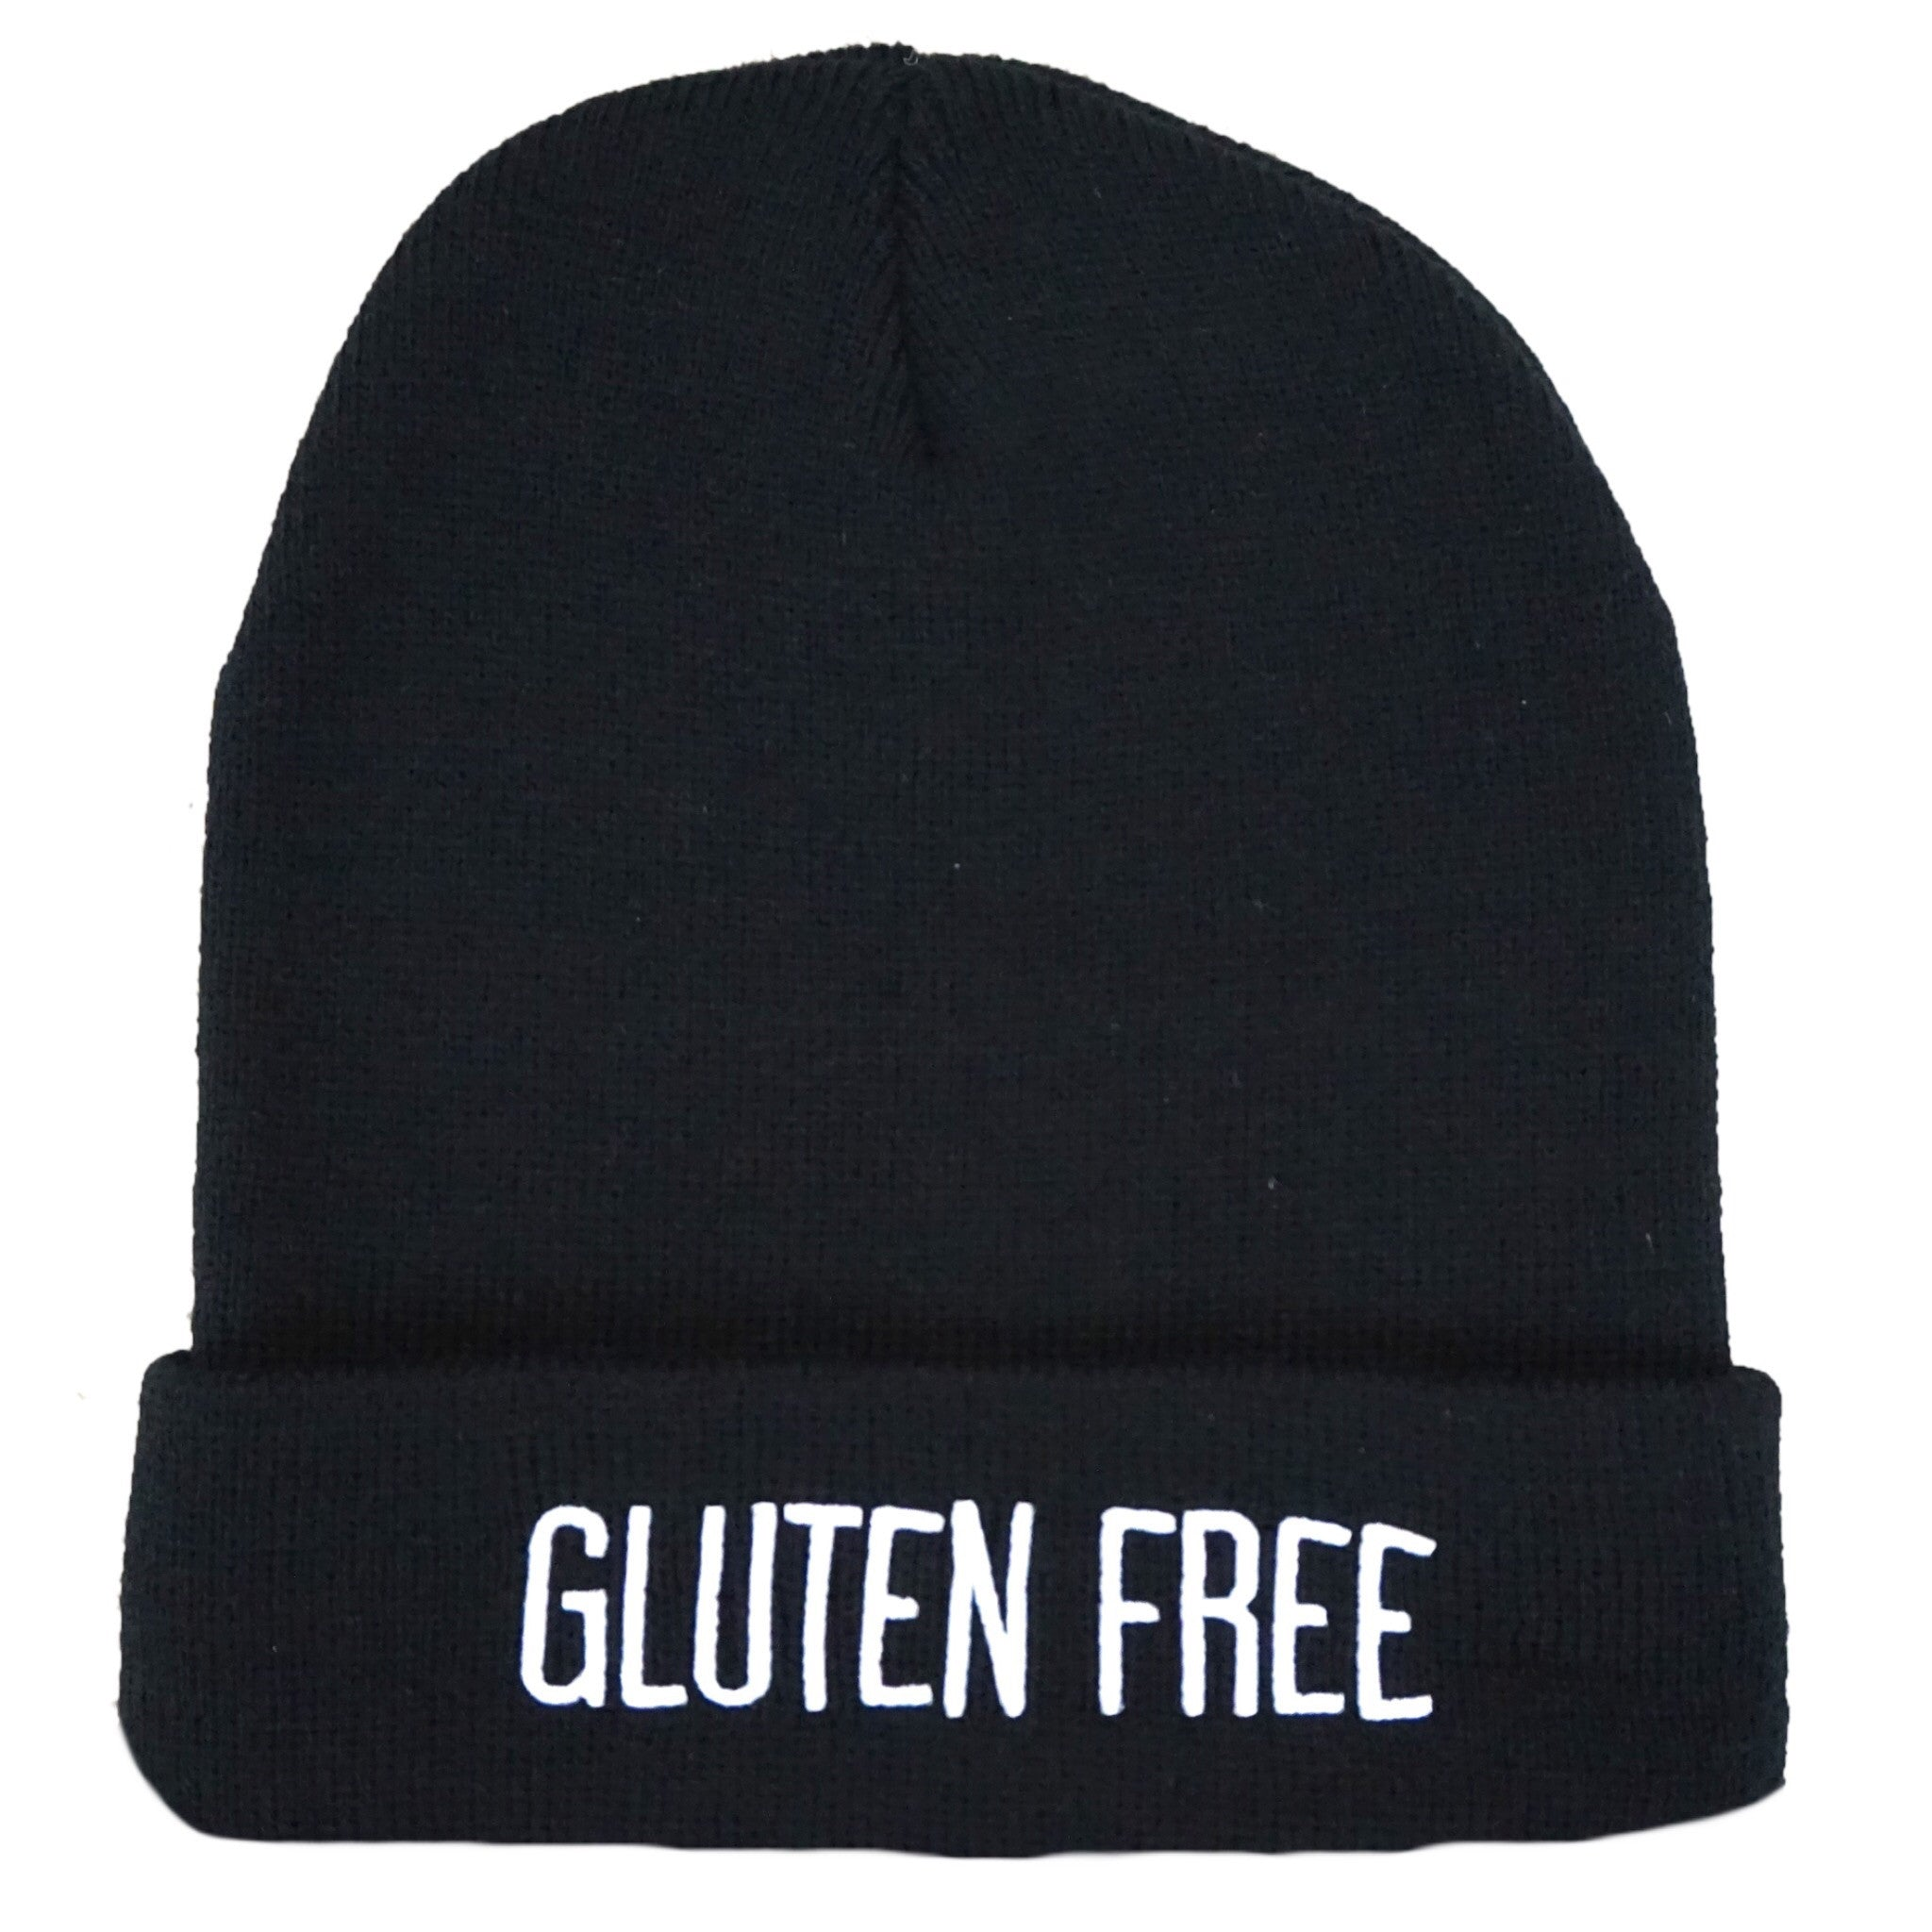 Gluten Free Beanie (SOLD OUT)